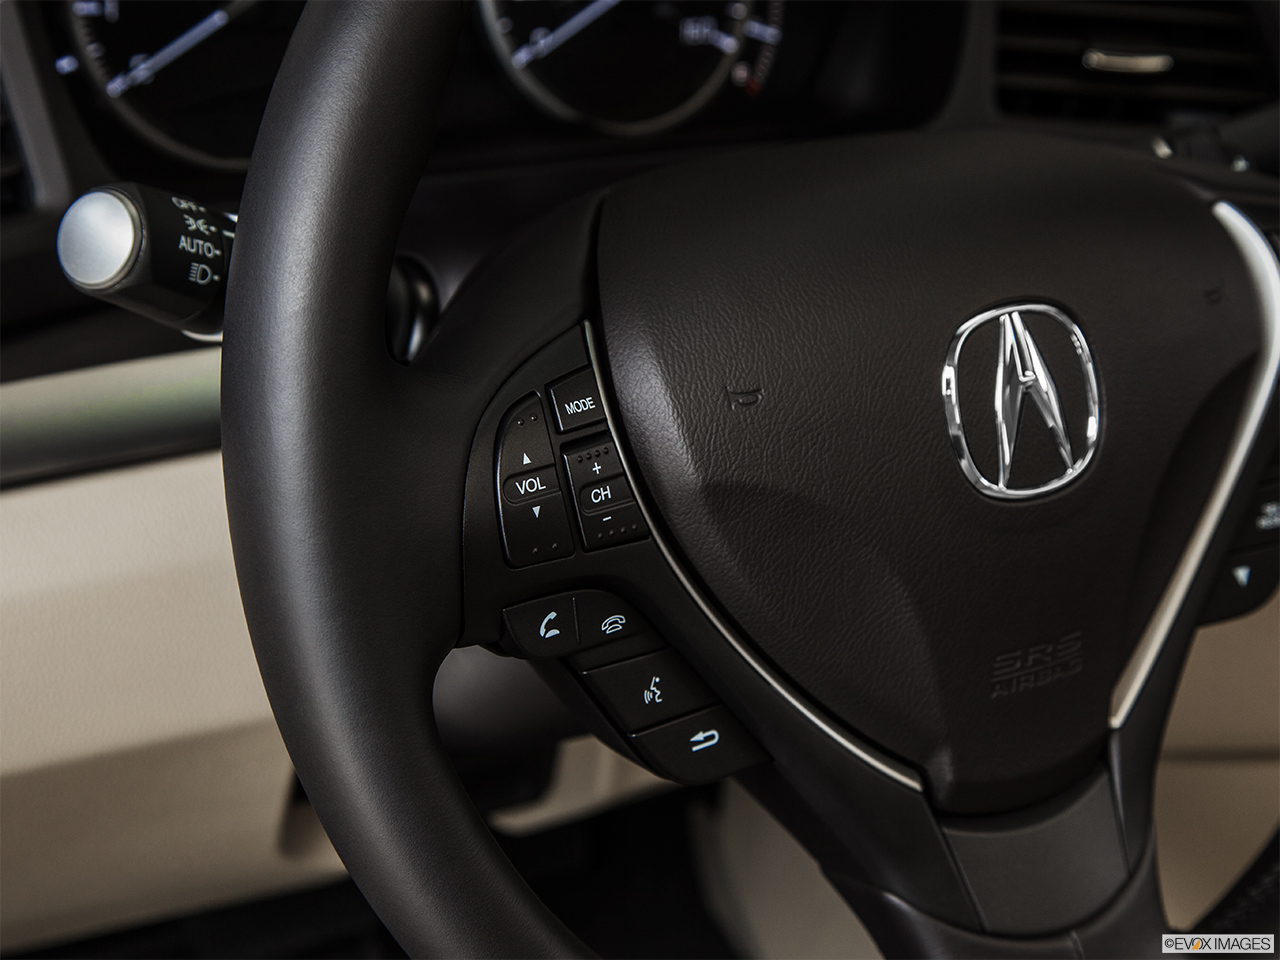 2014 Acura ILX Hybrid Base Steering Wheel Controls (Left Side)